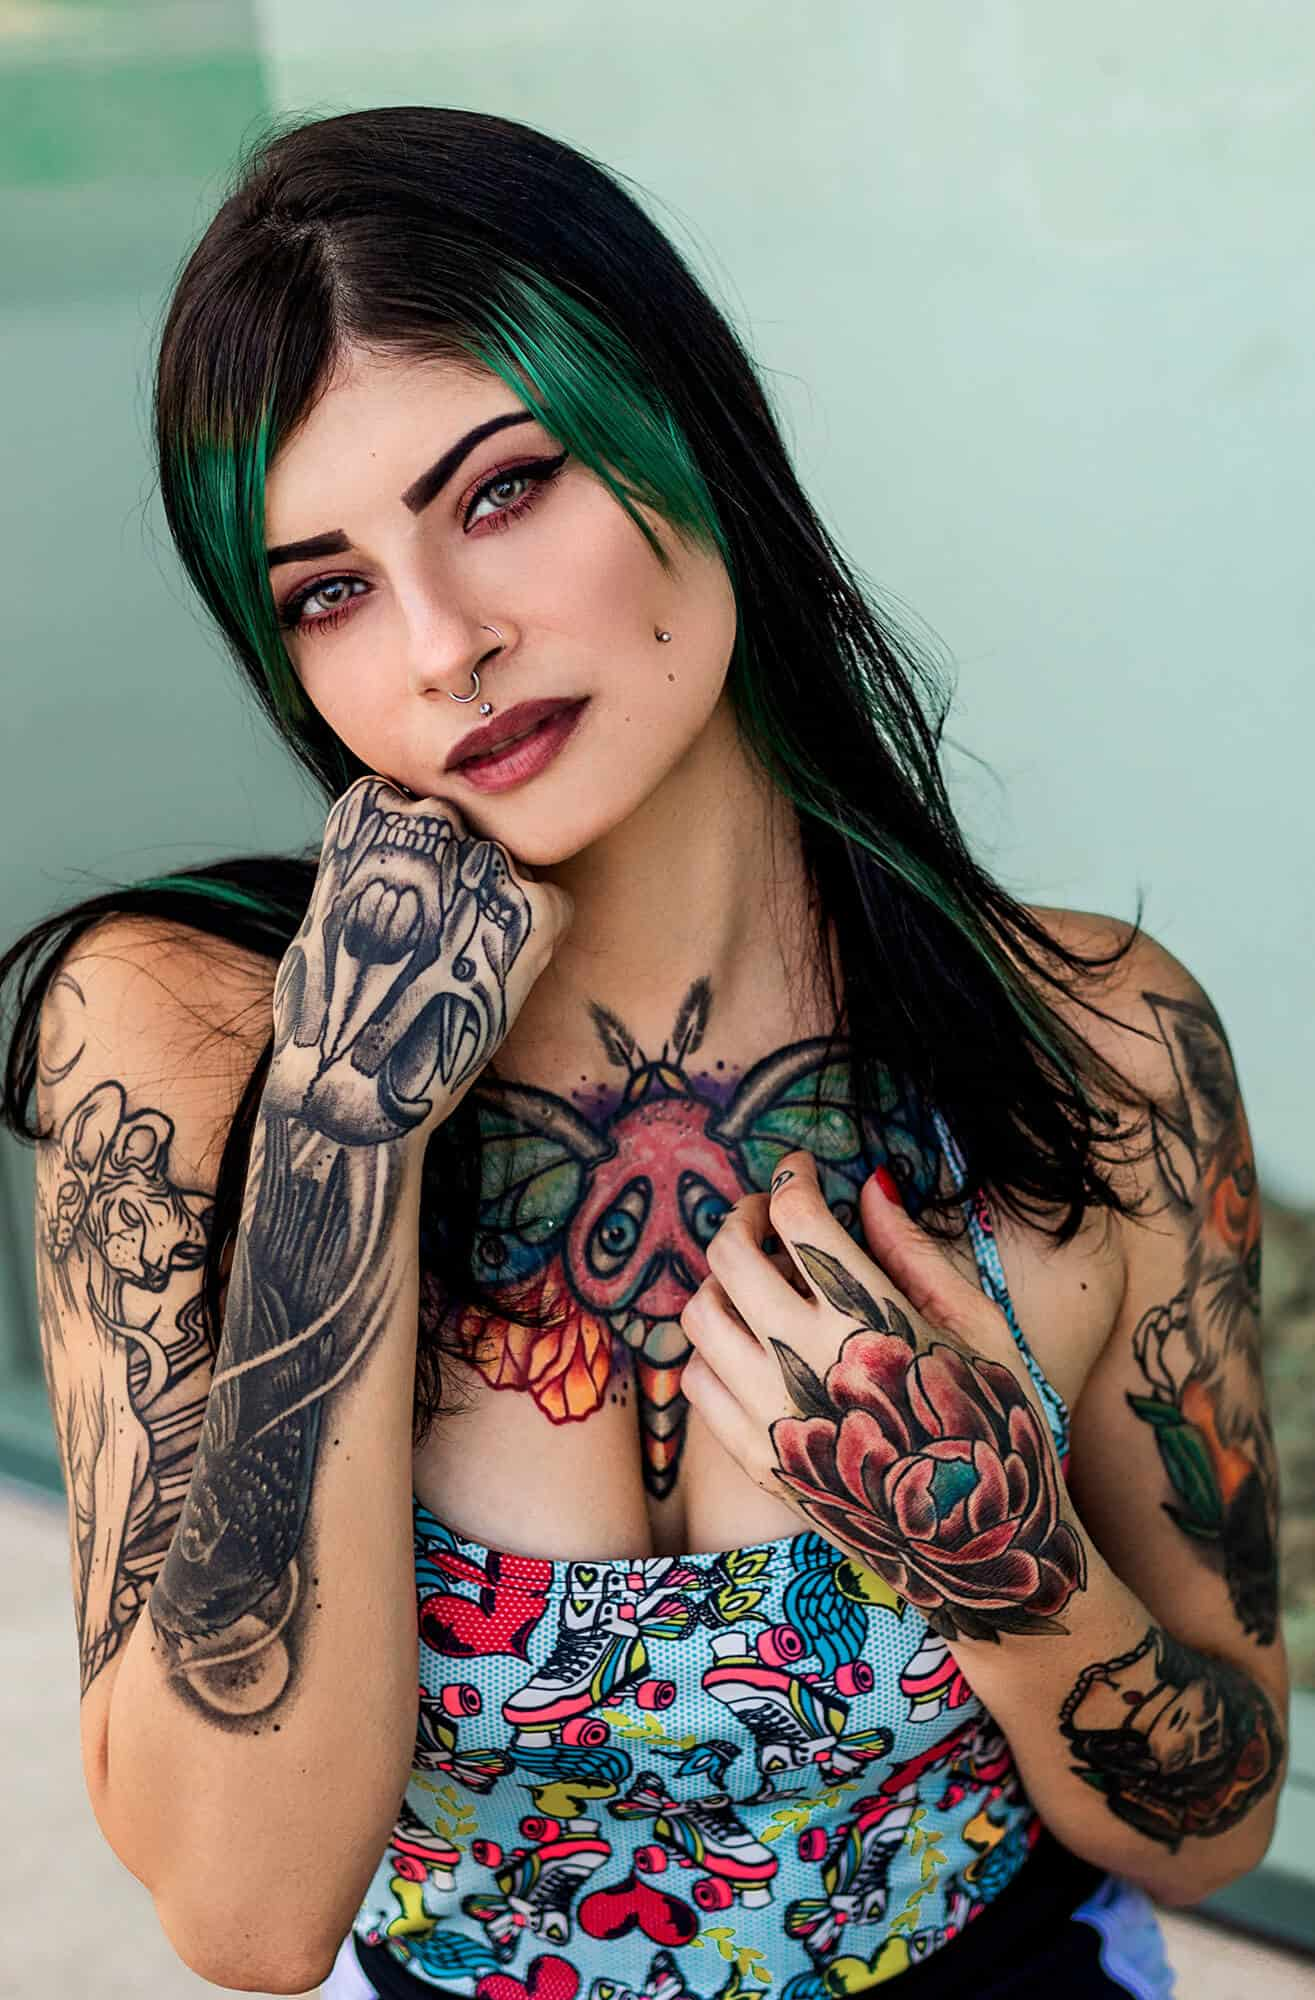 How to Treat Infected Tattoos - Wormhole Tattoo